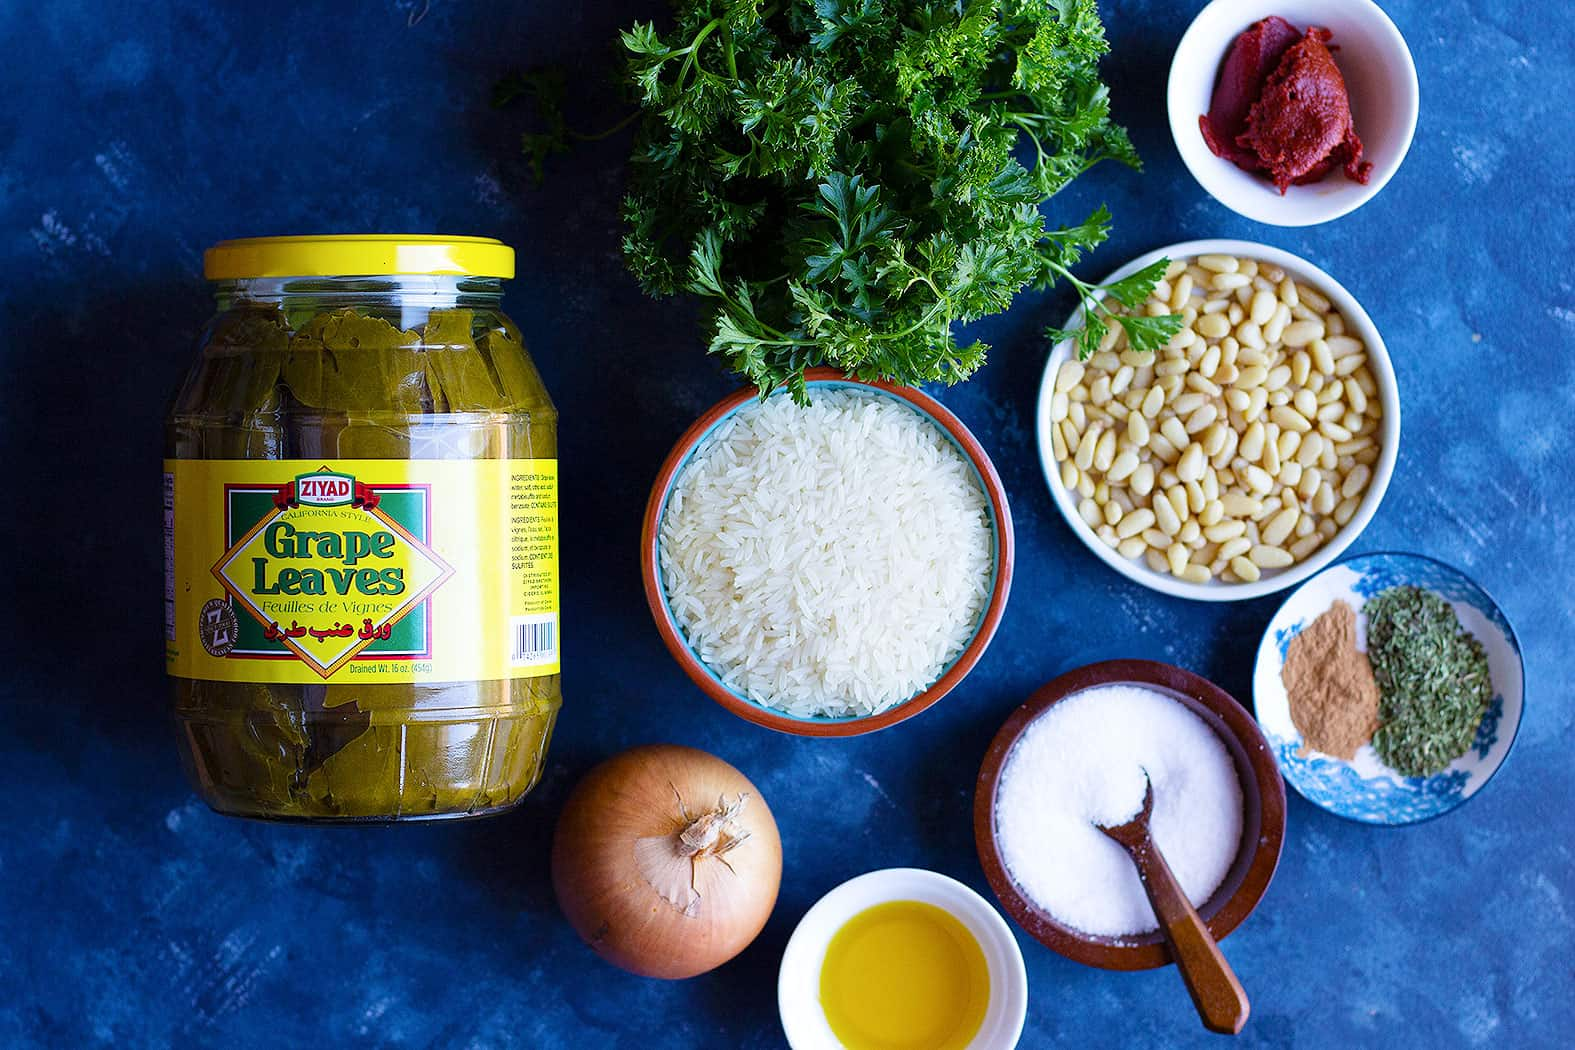 Ingredients shot for dolma recipe includes grape leaves, rice, onion, olive oil, parsley, spices, pine nuts and tomato paste